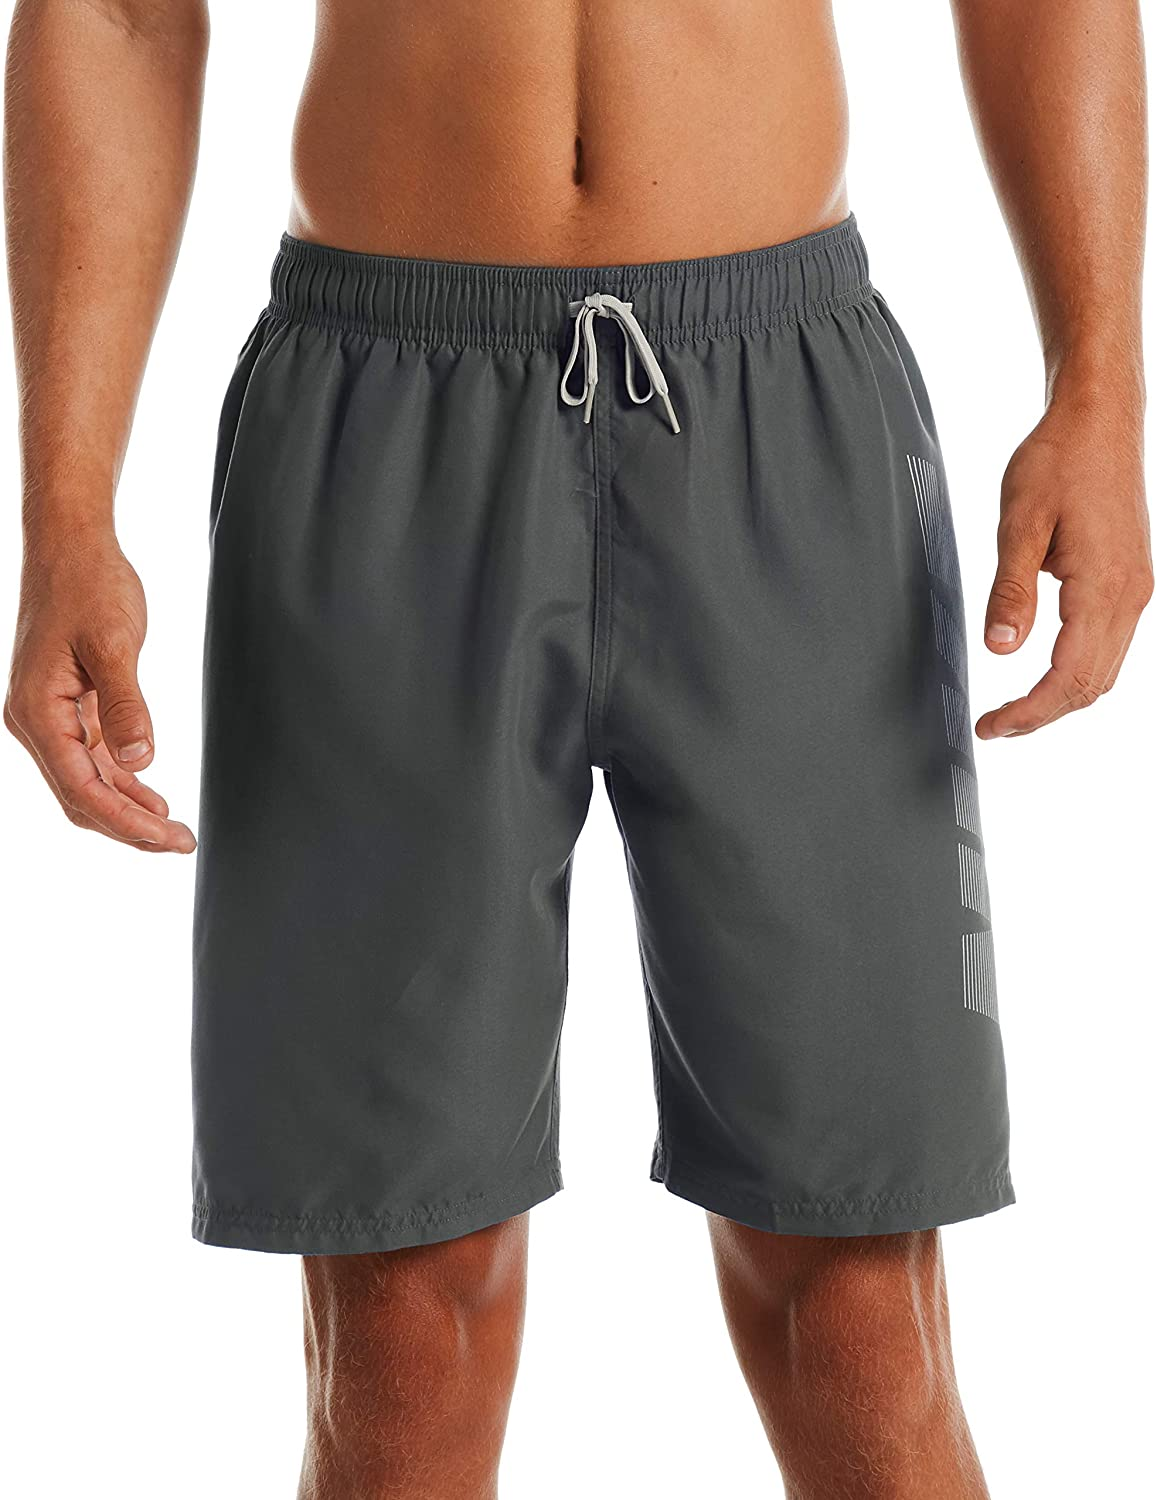 Men's Nike Logo Volley Short Swim Trunk in Iron Grey color from the front